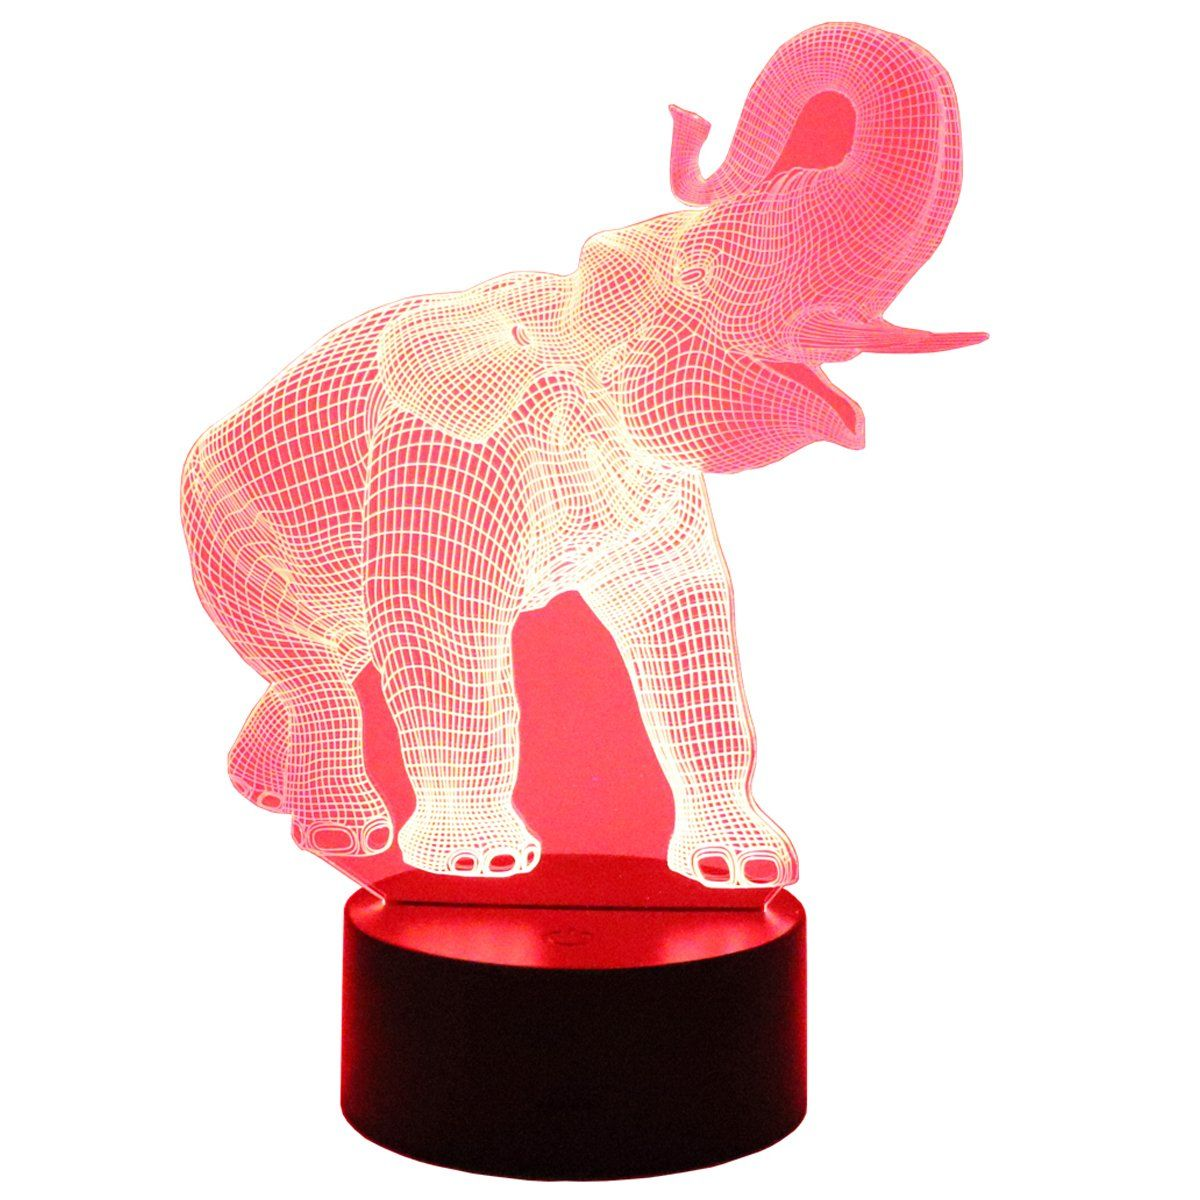 Hguangs 3d Elephant Lamp Night Lamp 3d Lamp 3d Optical Illusion Night Light Table Light 7 Colors Changing Touch Control Gift For Light Table Elephant Lamp Lamp